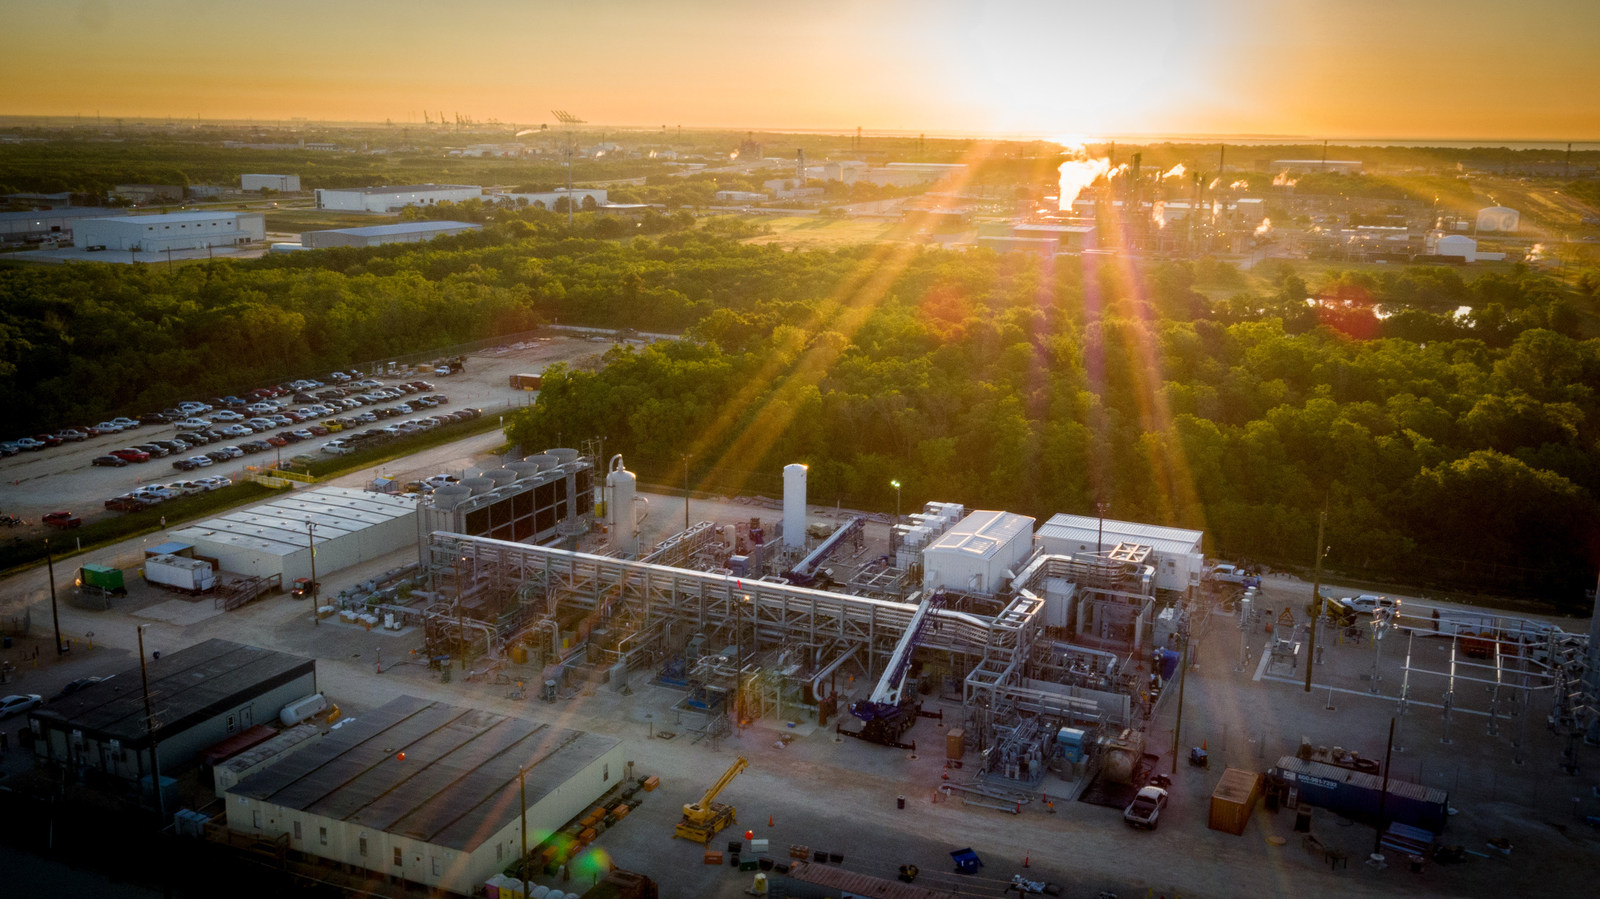 That natural gas power plant with no carbon emissions or air pollution? It works.